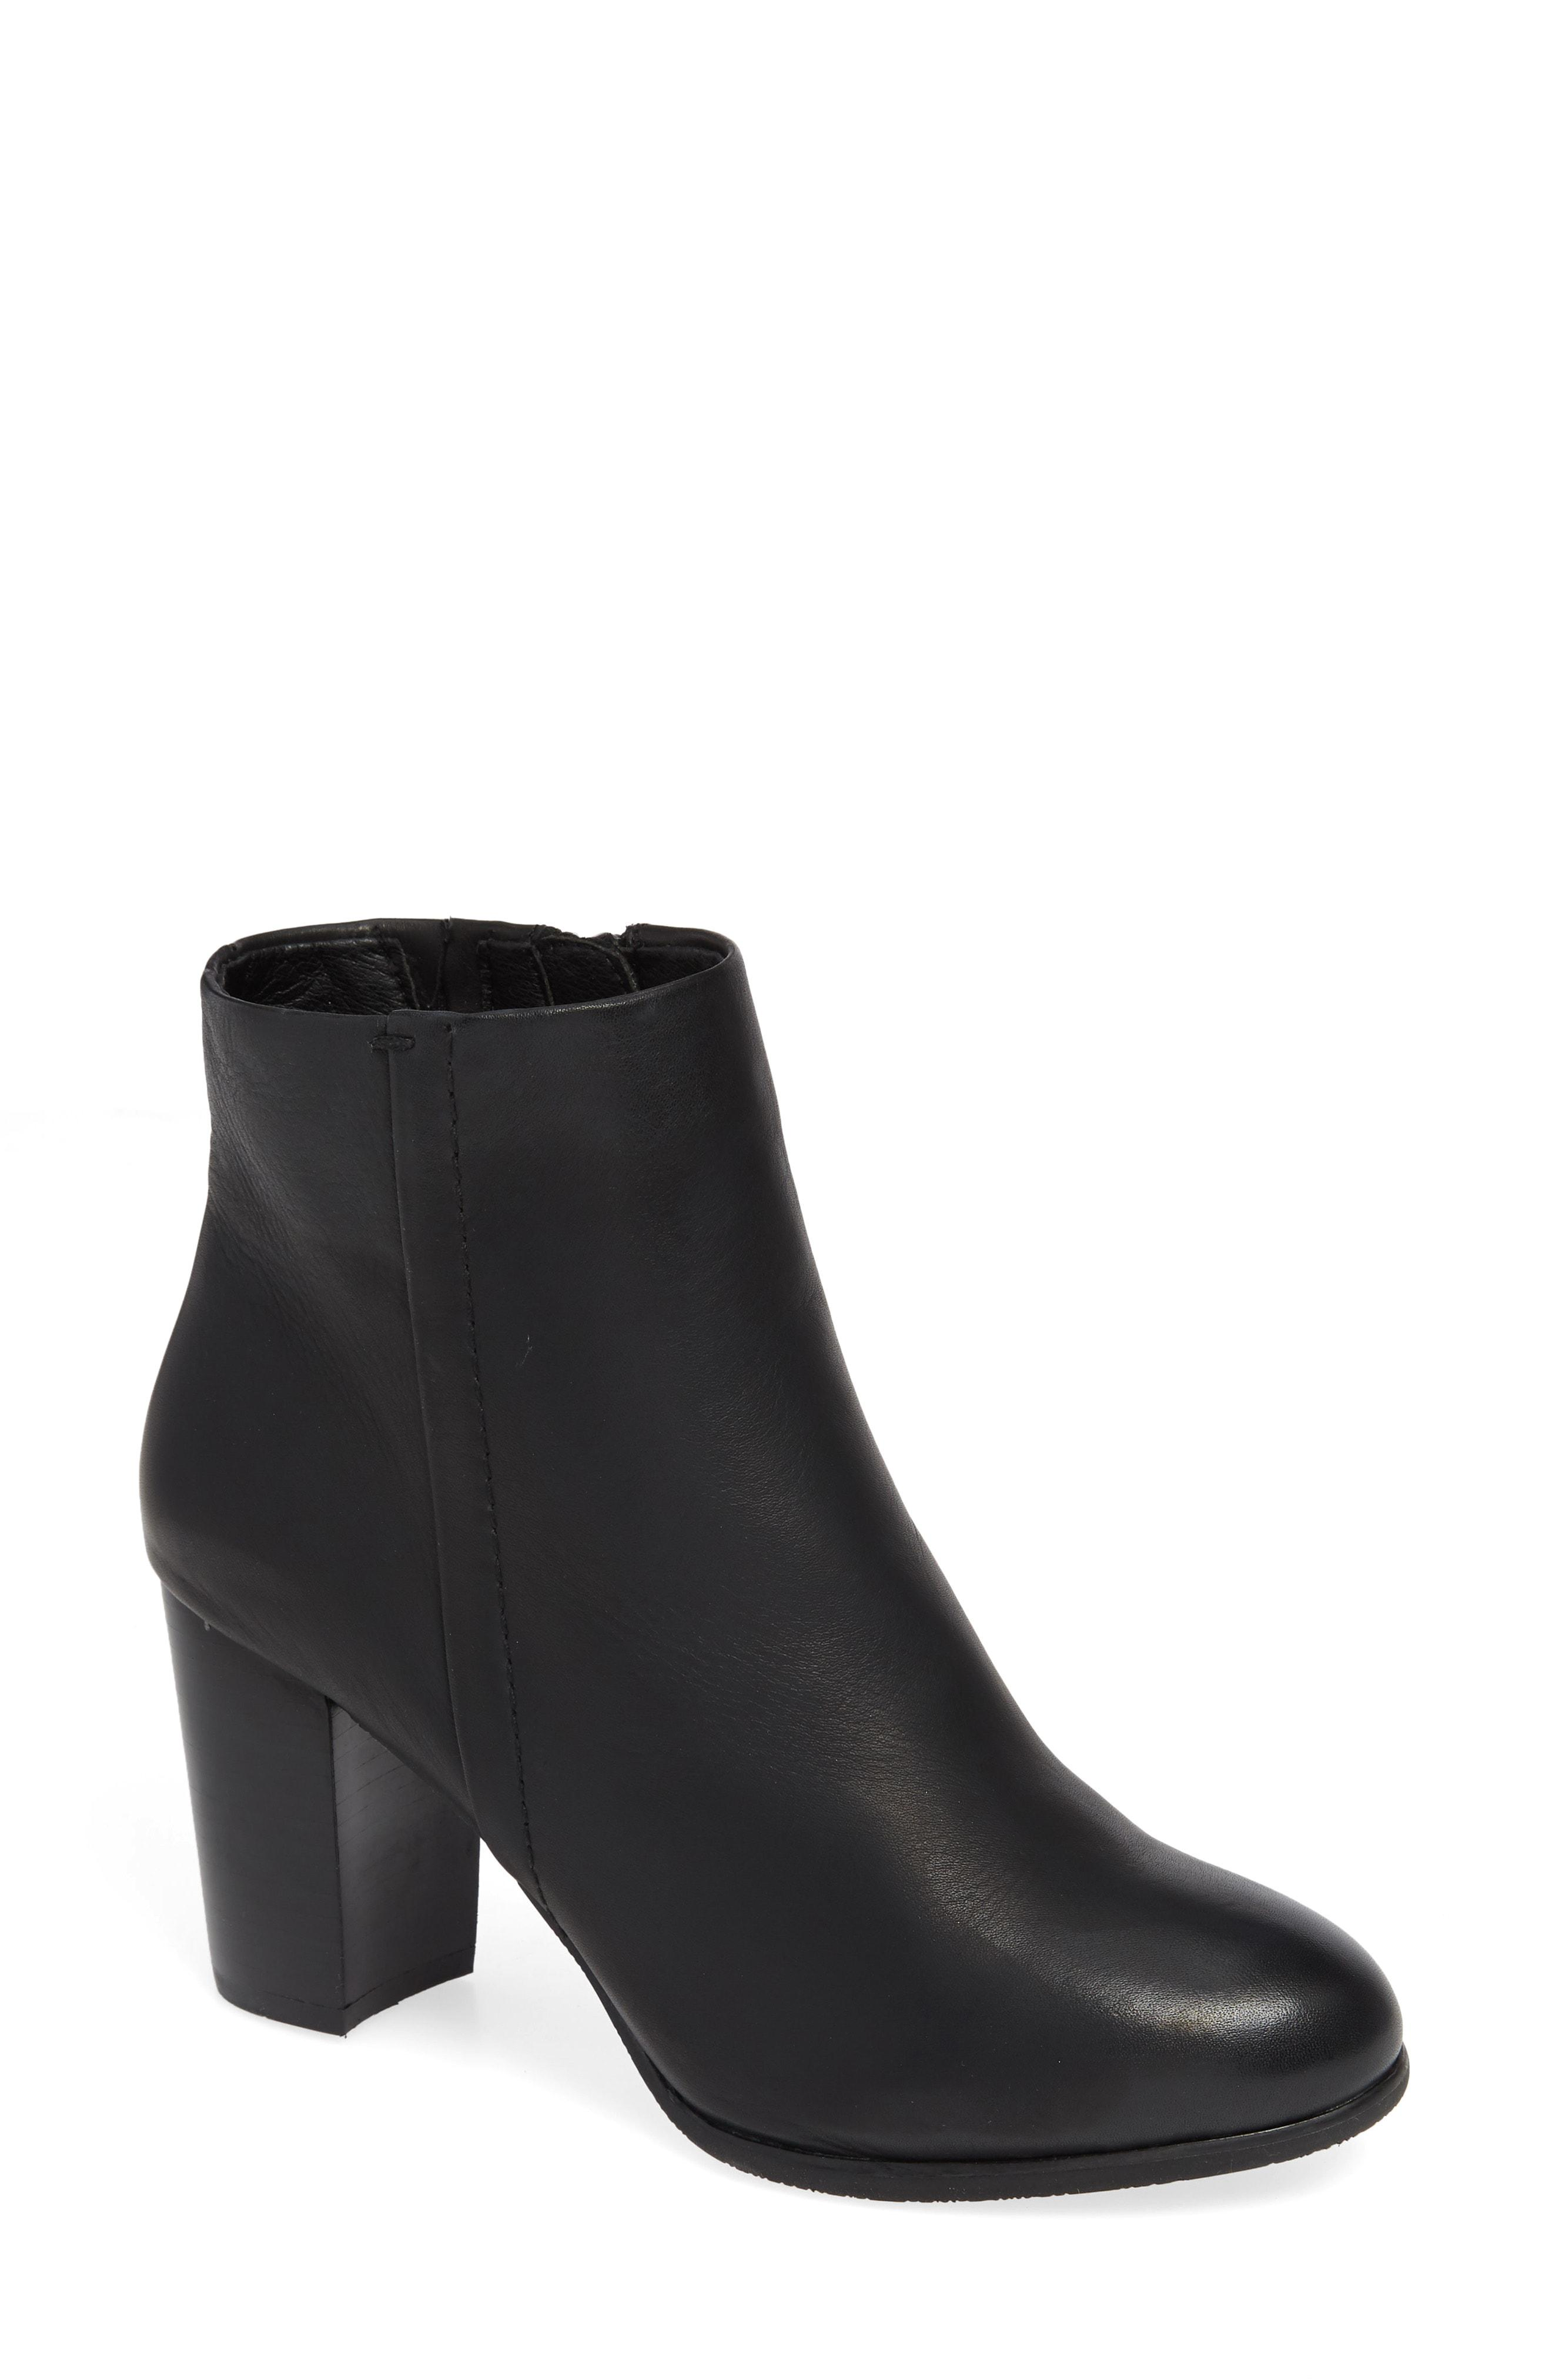 5f7a3cad584 Vionic Kennedy Ankle Bootie in Black - Lyst